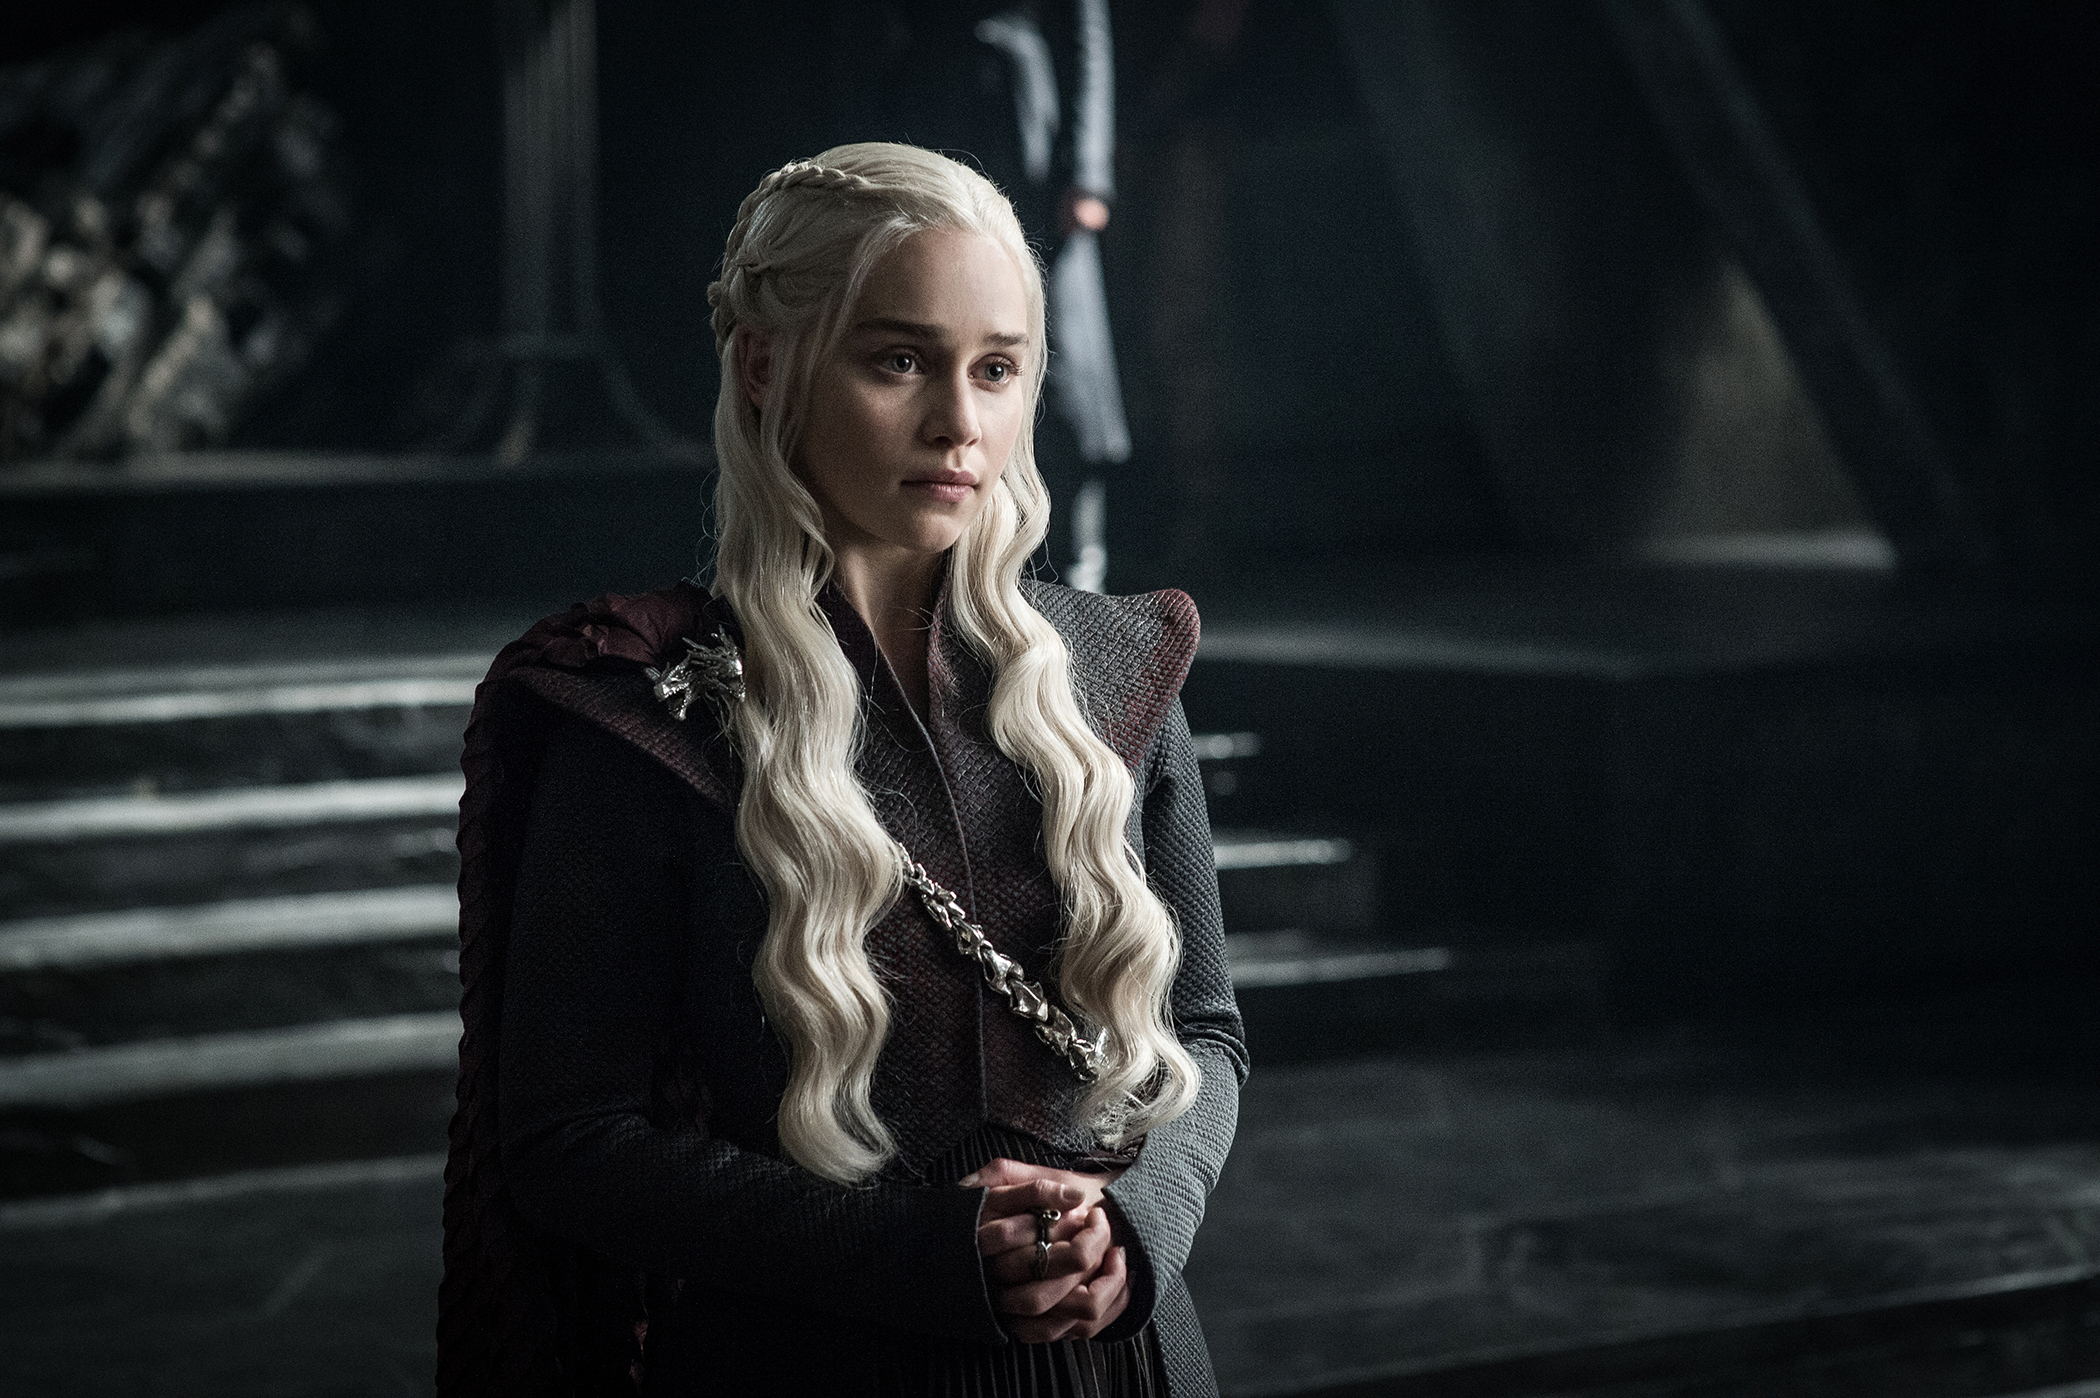 Game of Thrones spin-off confirmed, George RR Martin reveals gory details